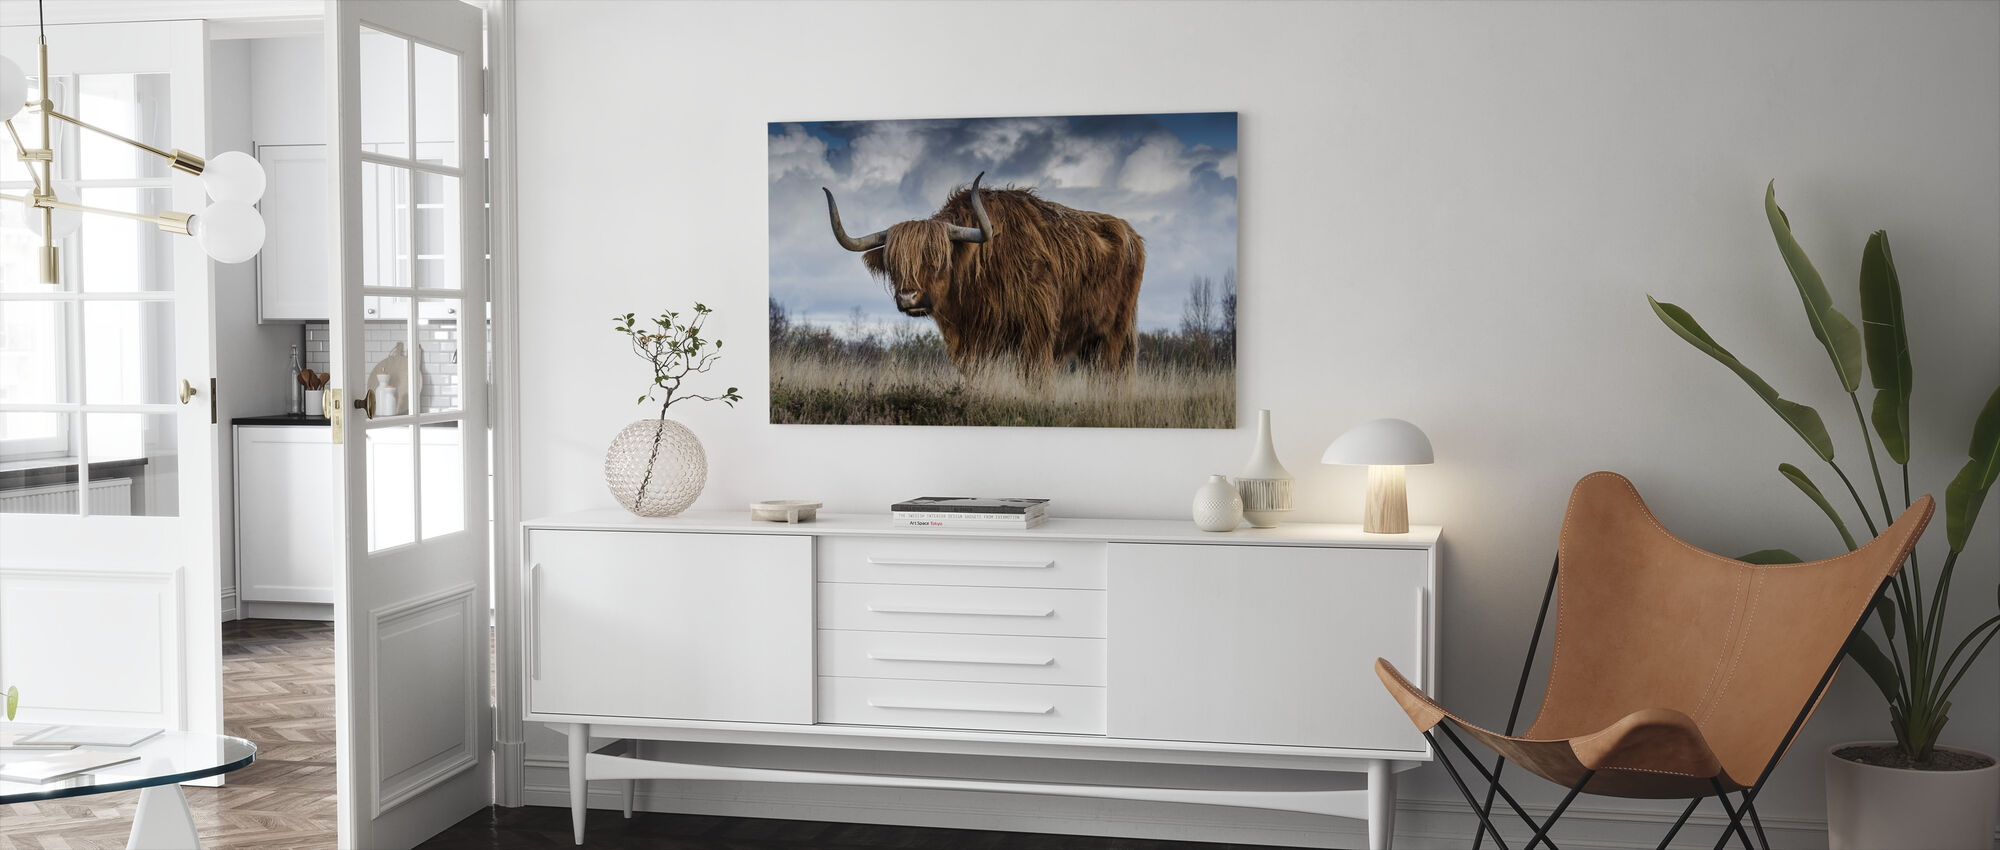 Bull Grazing in the Meadow - Canvas print - Living Room